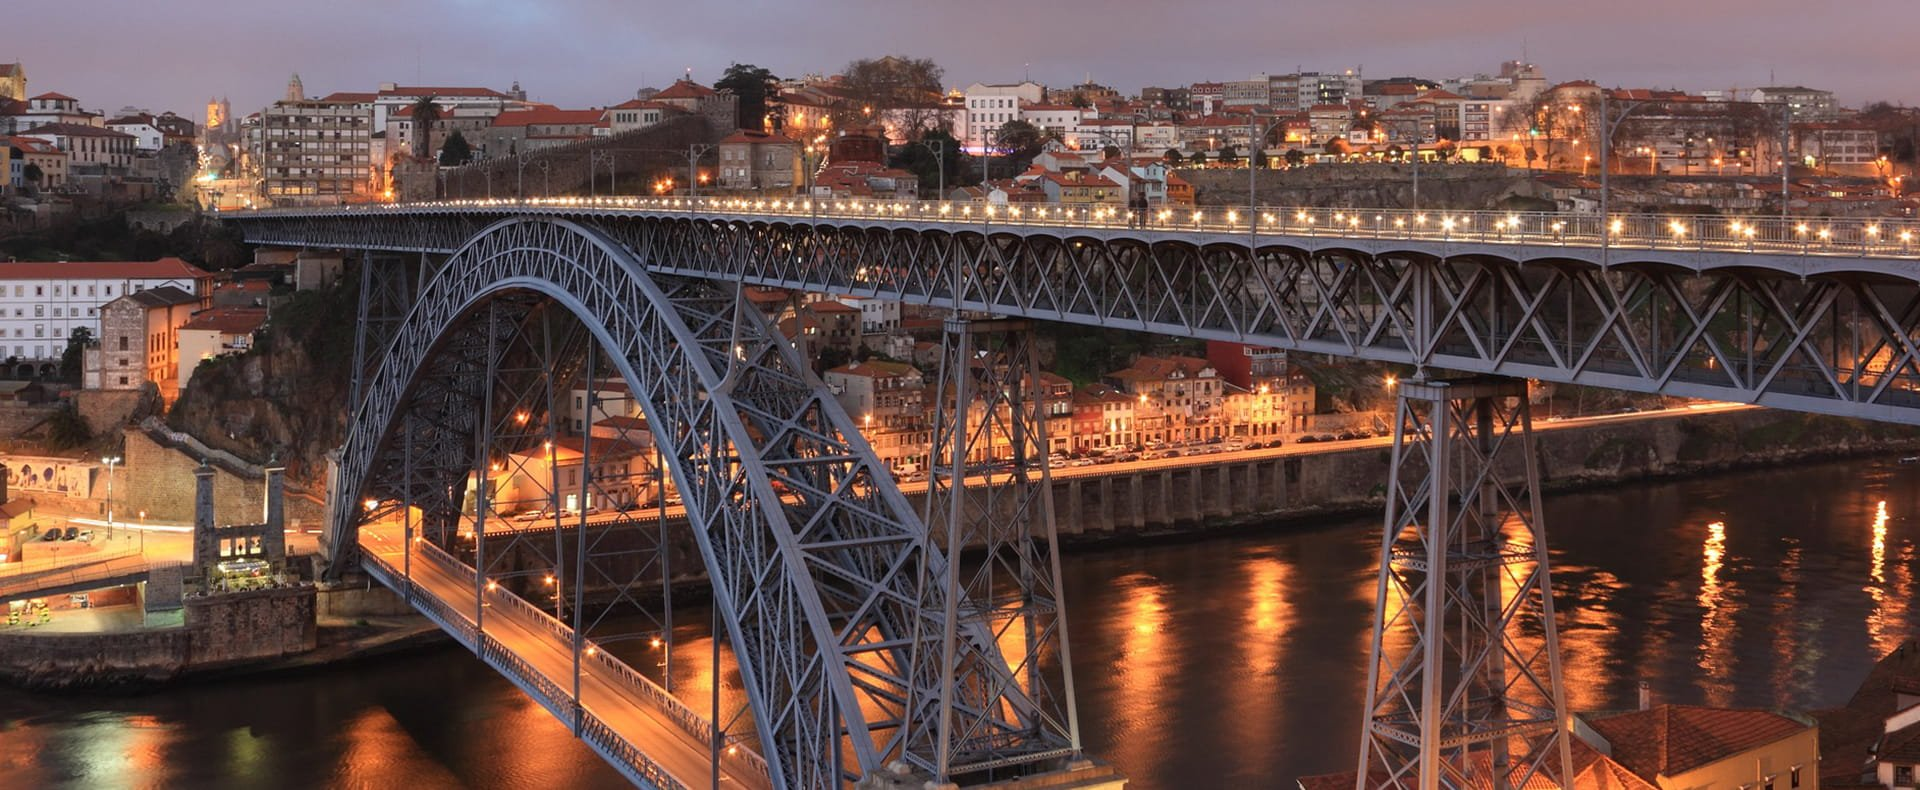 Luis Bridge, Porto, Portugal